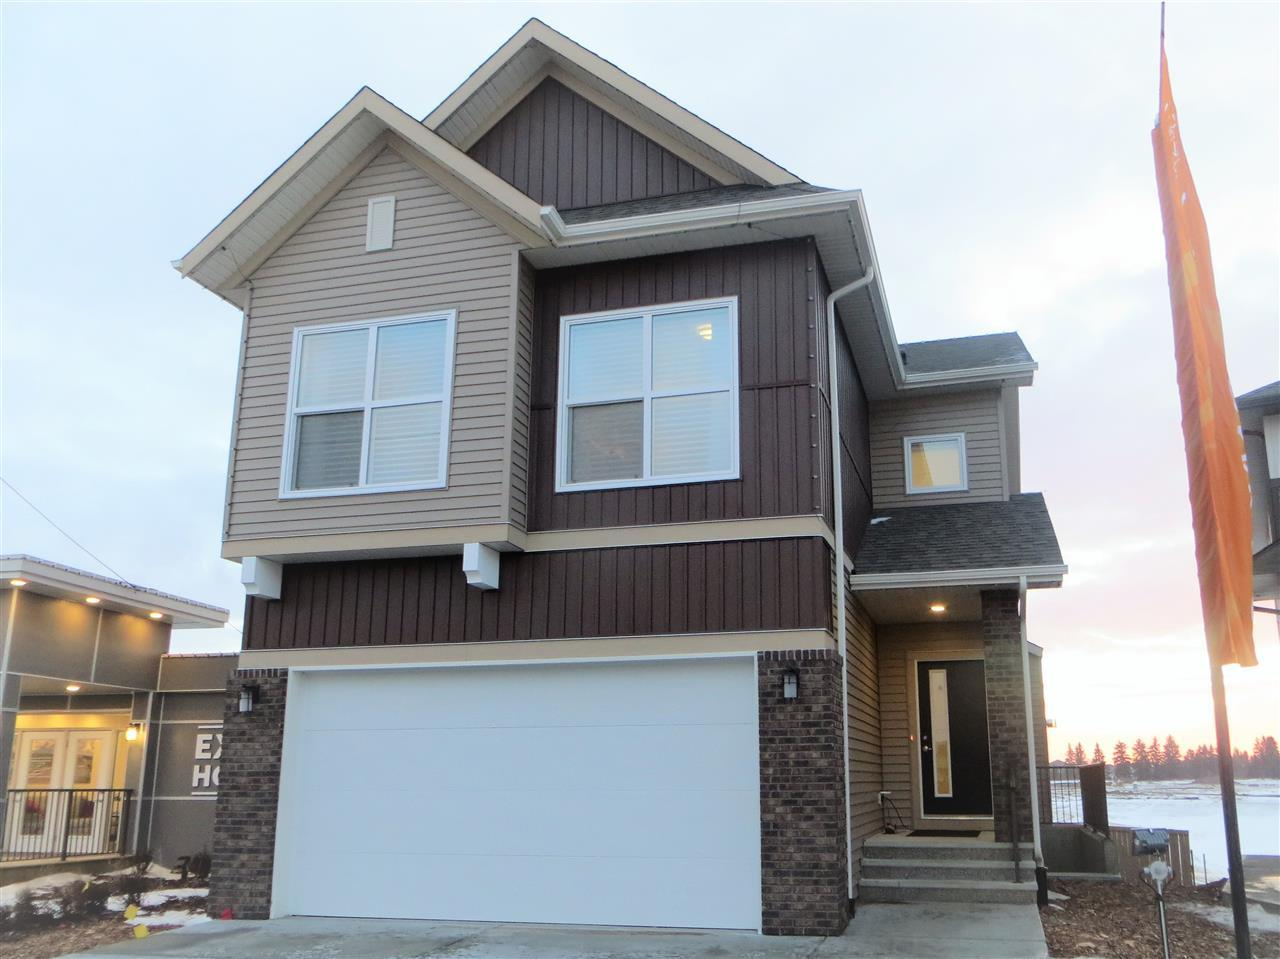 Brand new home to be built, excellent value in the Arbours of Keswick! Construction has not commenced, anticipate 6 months to build. Pick your colors and options to personalize your new home (note the interior photos are not an exact representation, options chosen will be different as the pictures are of a showhome). Measured to RMS standards. The chef's kitchen with clean lines features cabinets with choice of stain, island, pantry, and equipped with stainless steel appliances.  The upper level has a bonus room, 3 bedrooms including the master bedroom with walk in closet and ensuite. Laundry area is also on the upper level for added convenience.  The garage is oversized and 20x22. Complimentary move-in concierge program included!